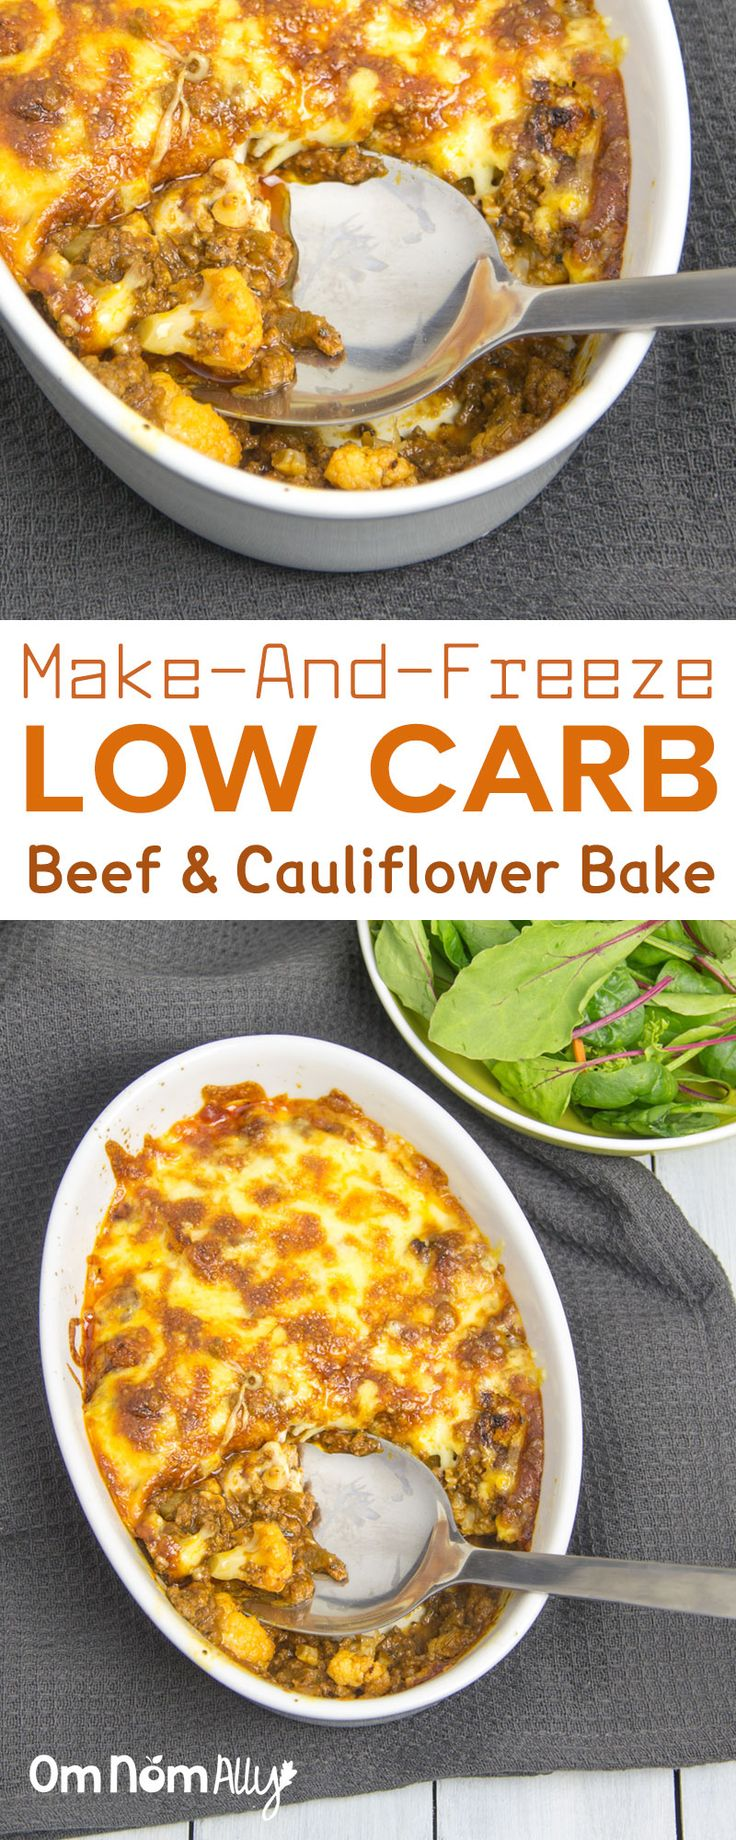 """(Make-And-Freeze) Low Carb Beef & Blumenkohl """"Pasta"""" Backen"""